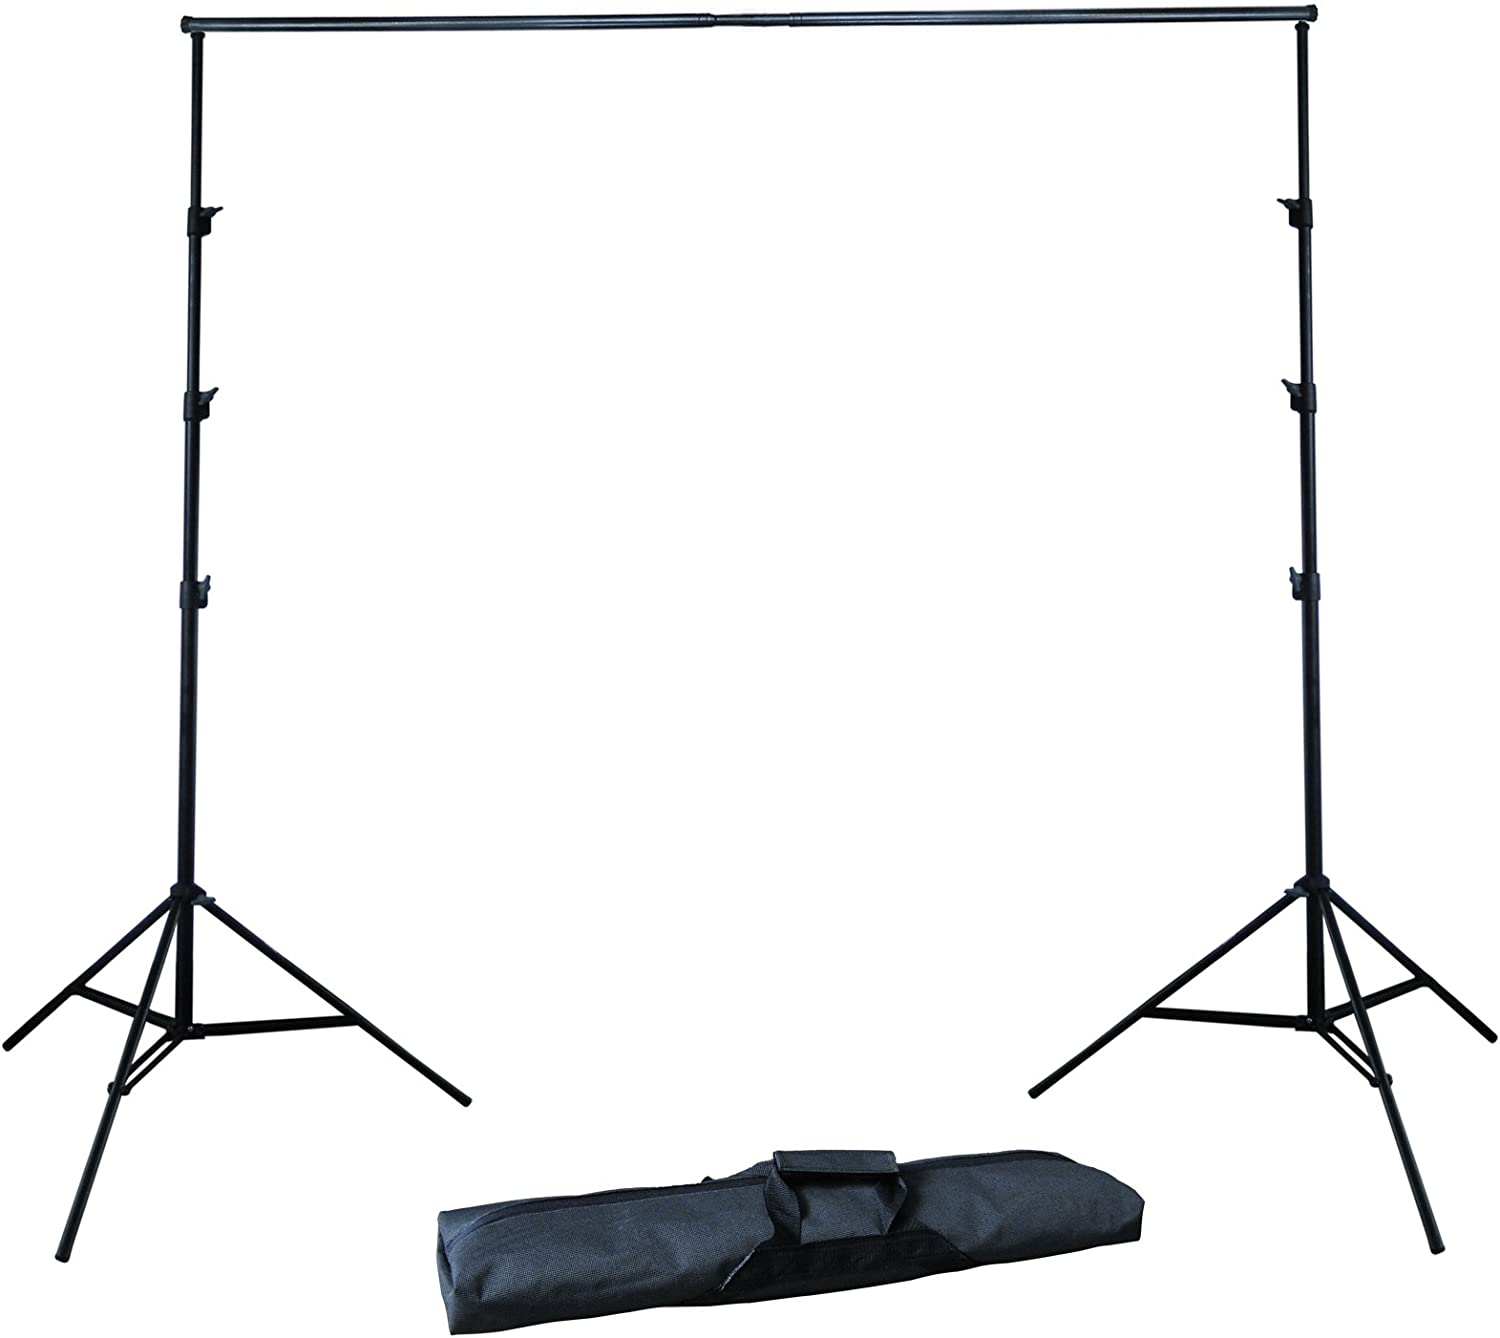 Telescope Backdrop Support System Fit Your Place Linco Lincostore AM104 Heavy Duty Background Stand and Light Stand Combo 9ft x 10ft